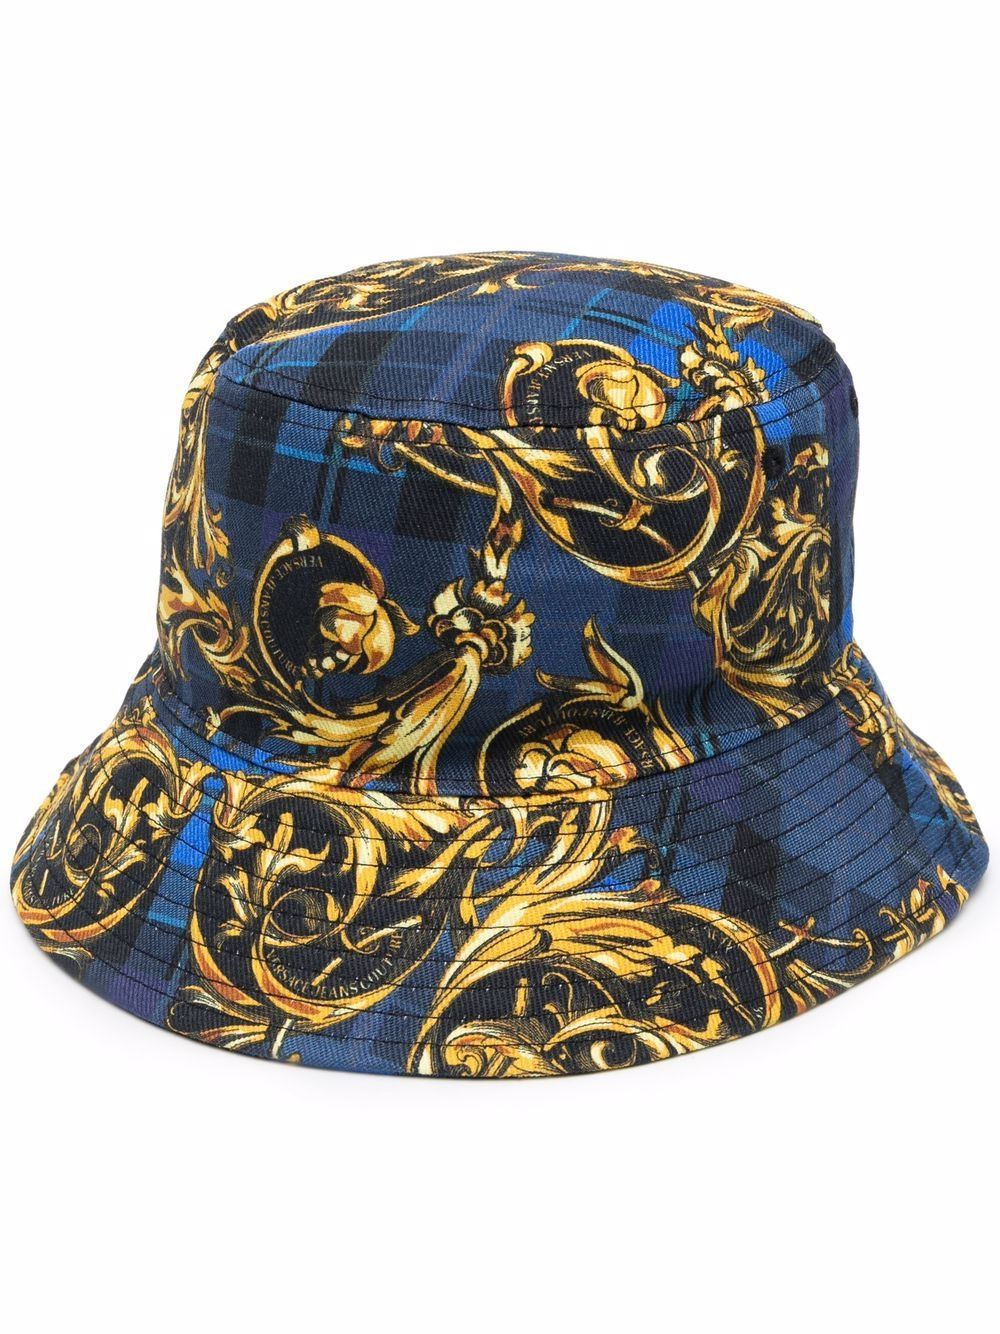 Versace jeans couture cappelli blu